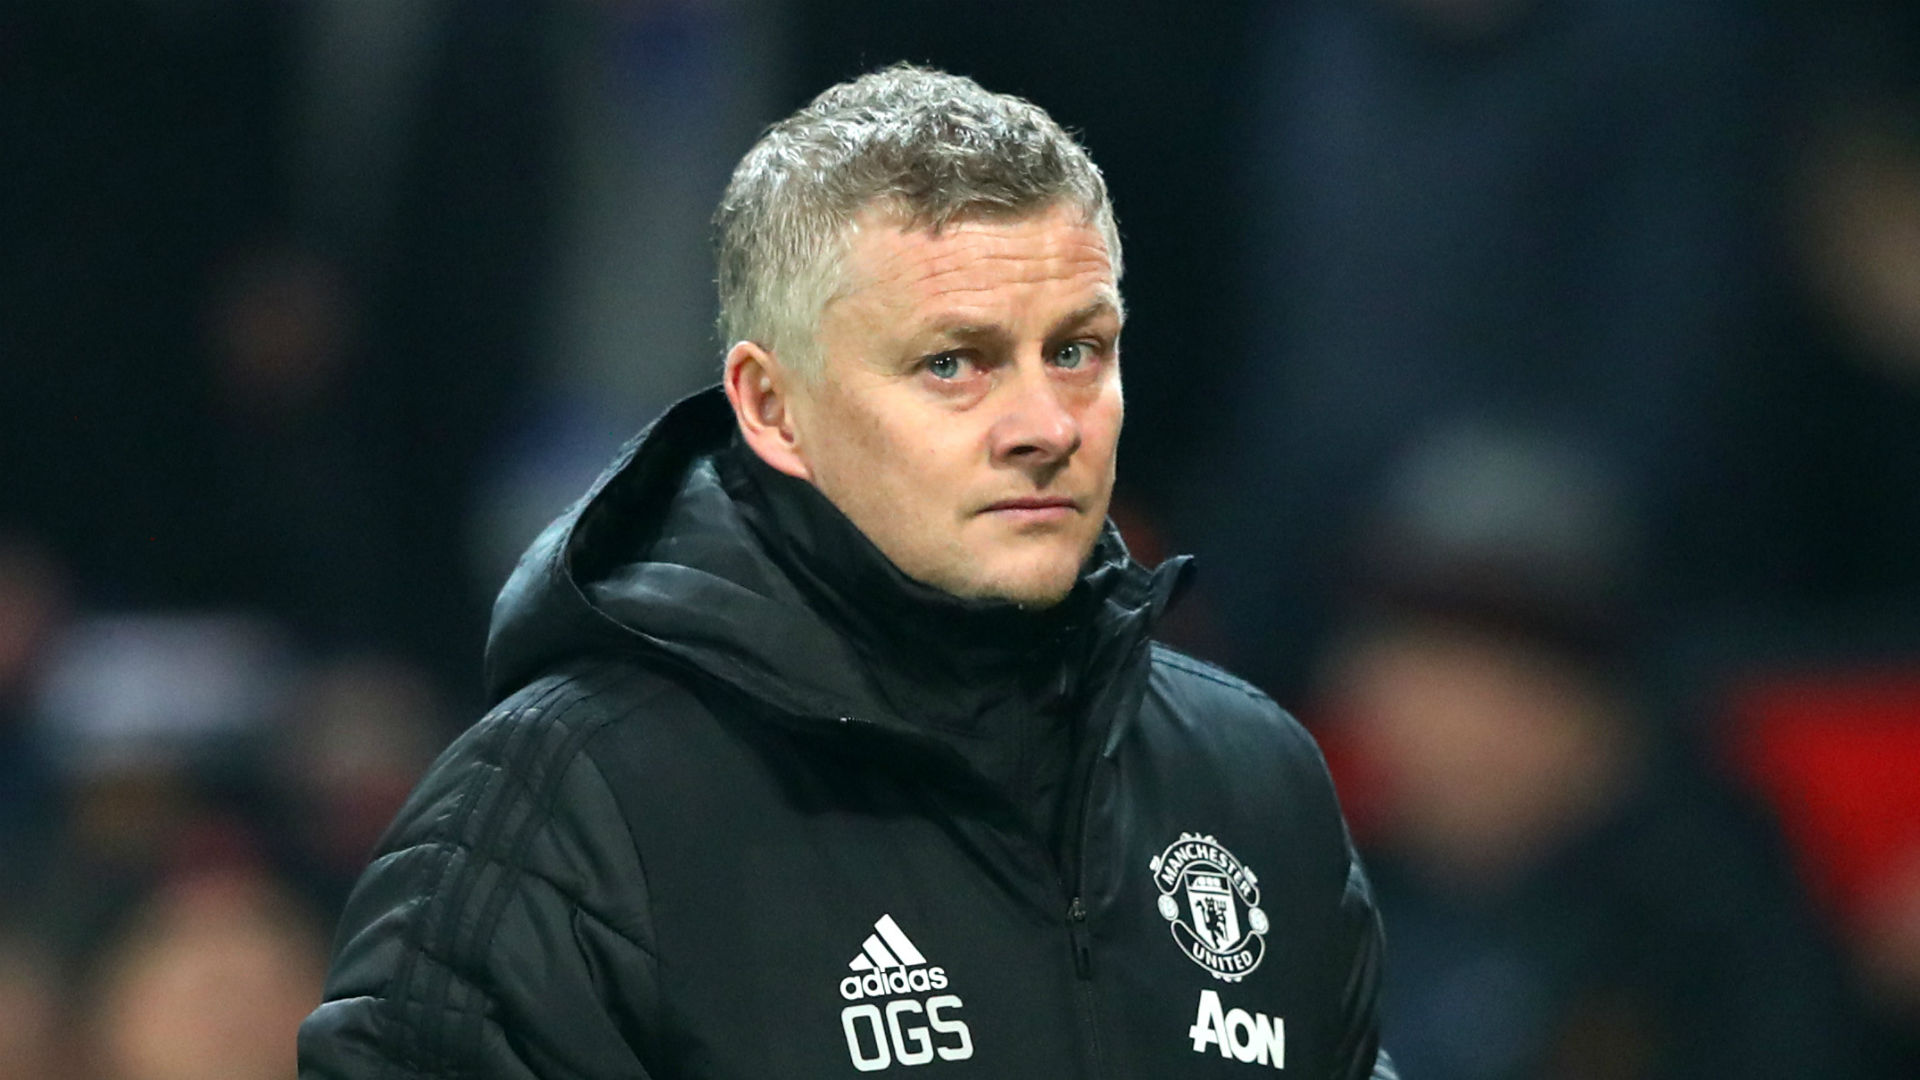 Solskjaer questions Chelsea's extra rest ahead of FA Cup semi: It's not fair